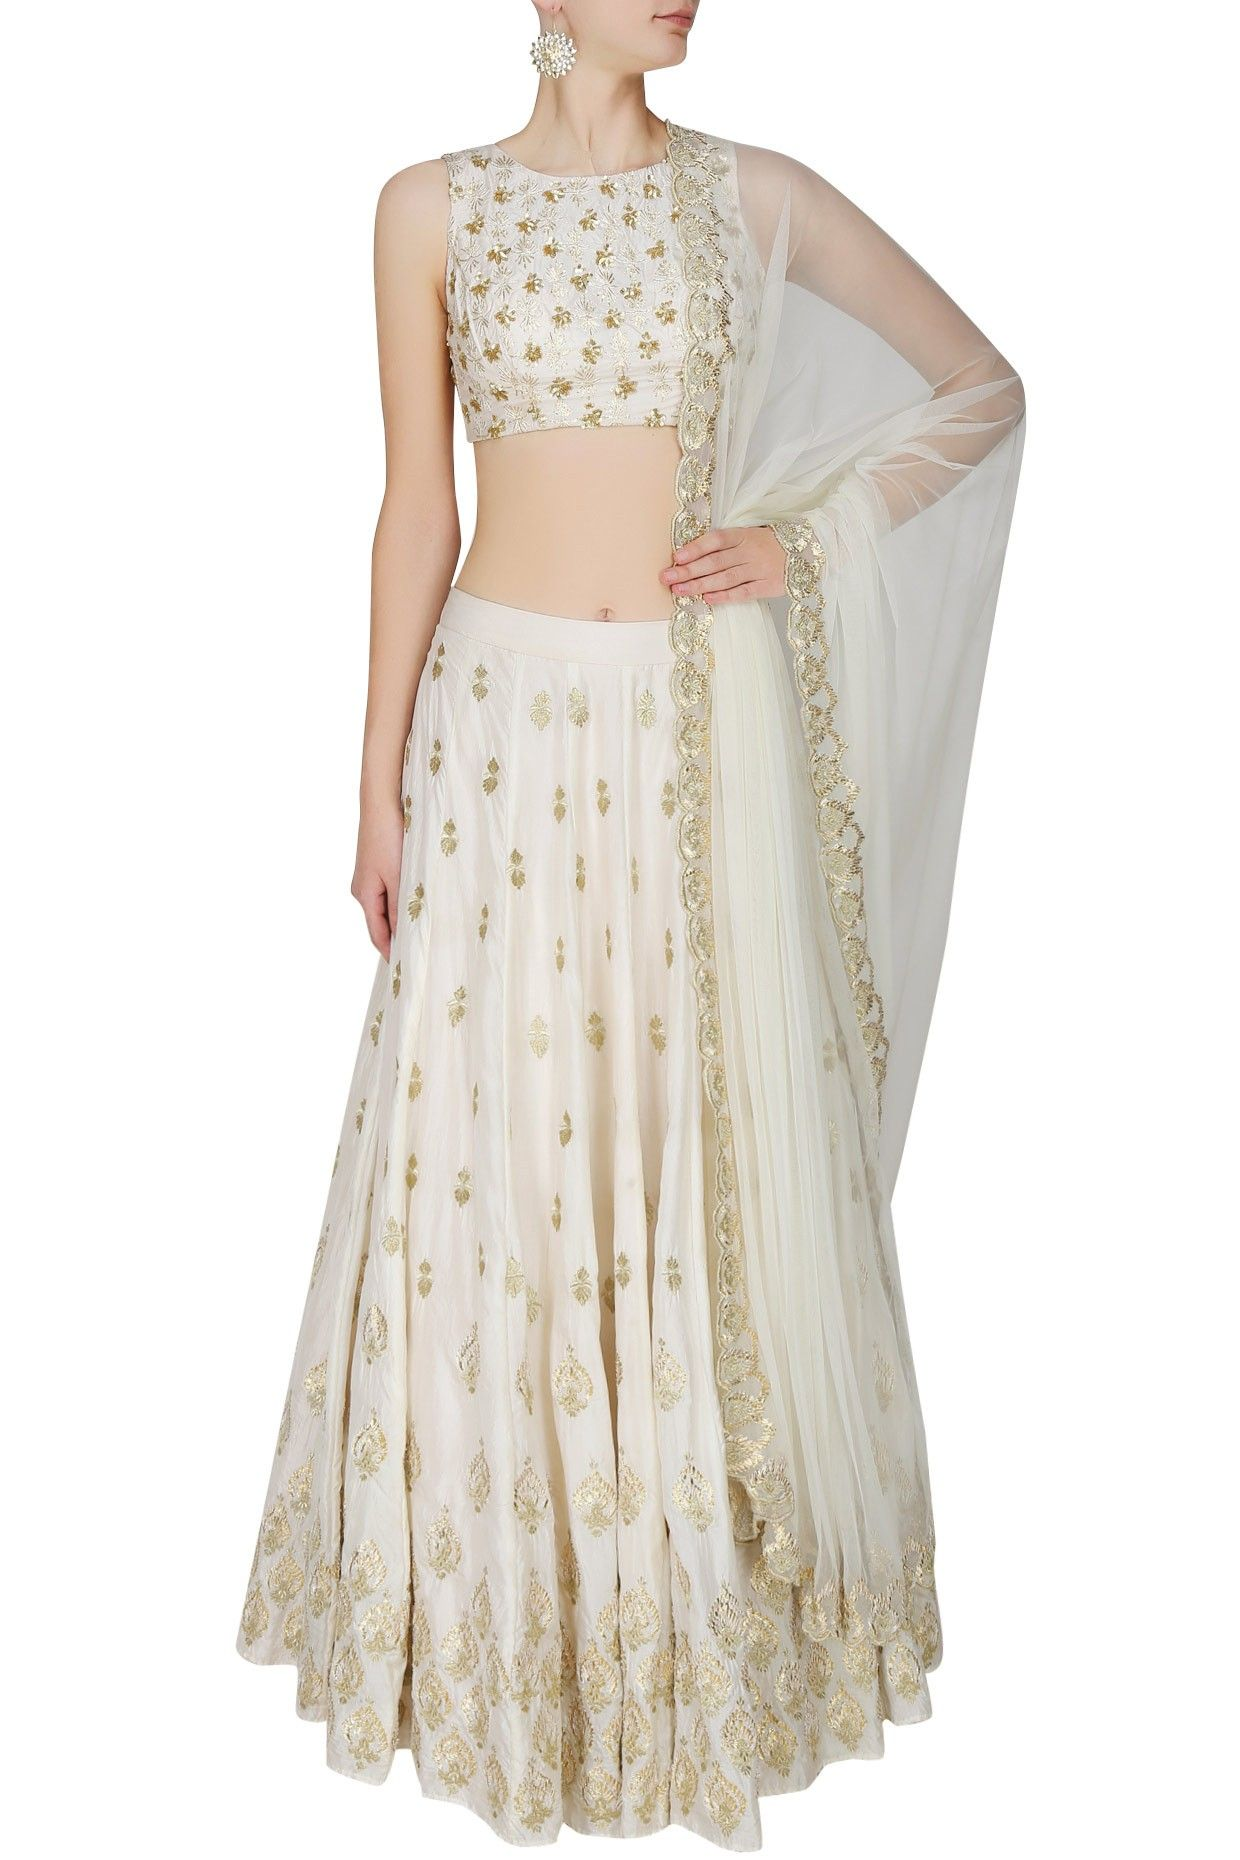 Simple off white wedding dresses  ASTHA NARANG  Off White And Gold Gota And Sequins Motifs Lehenga